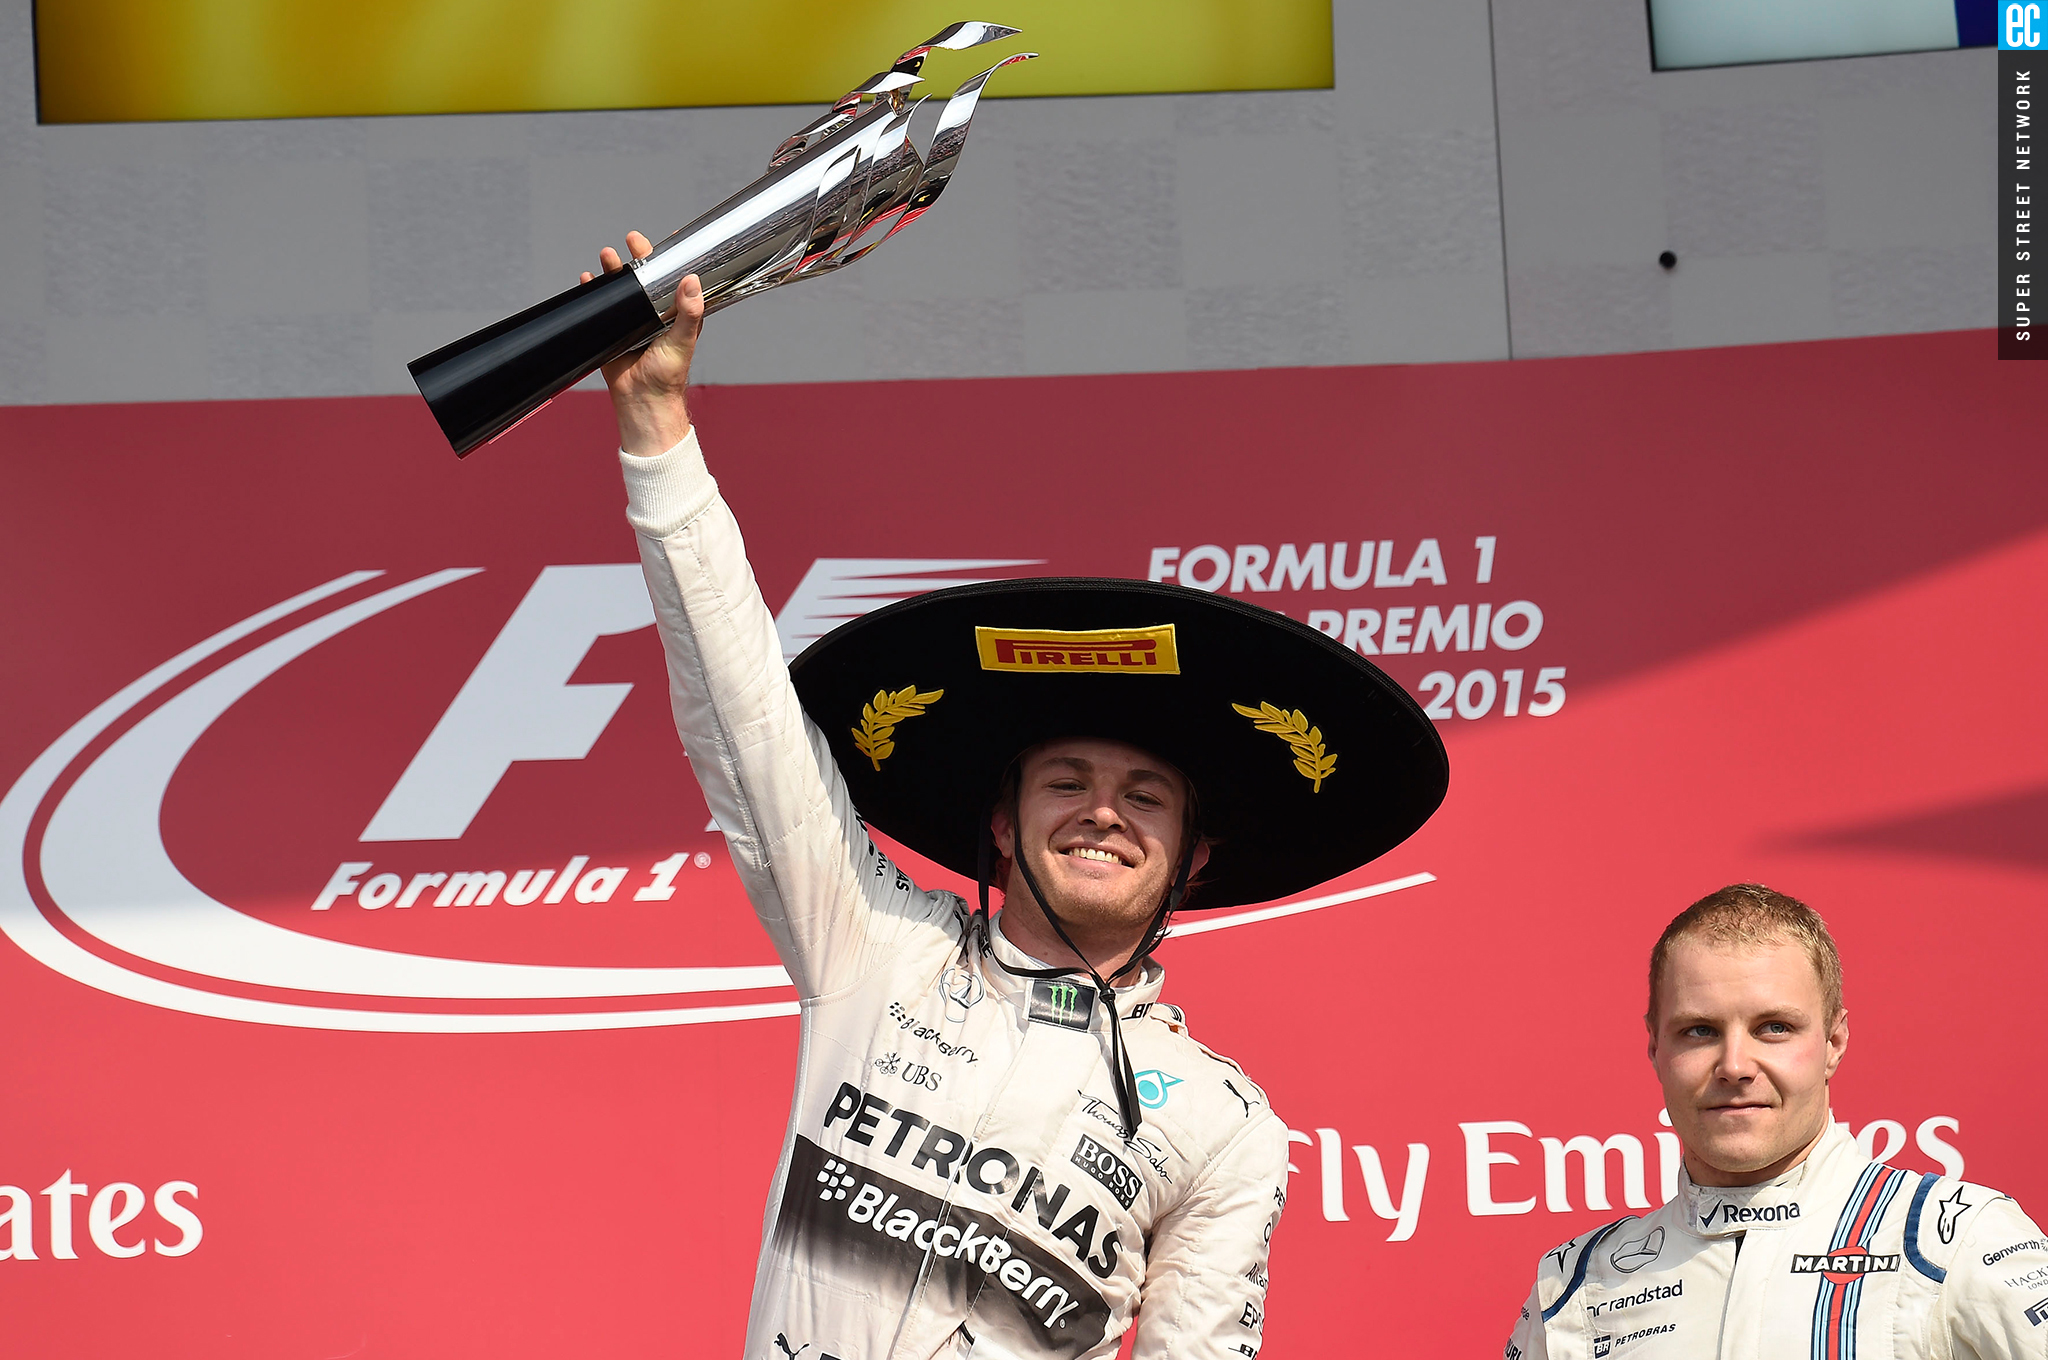 44498f634937e Mexican grand prix race winner wearing pirelli sombrero with trophy